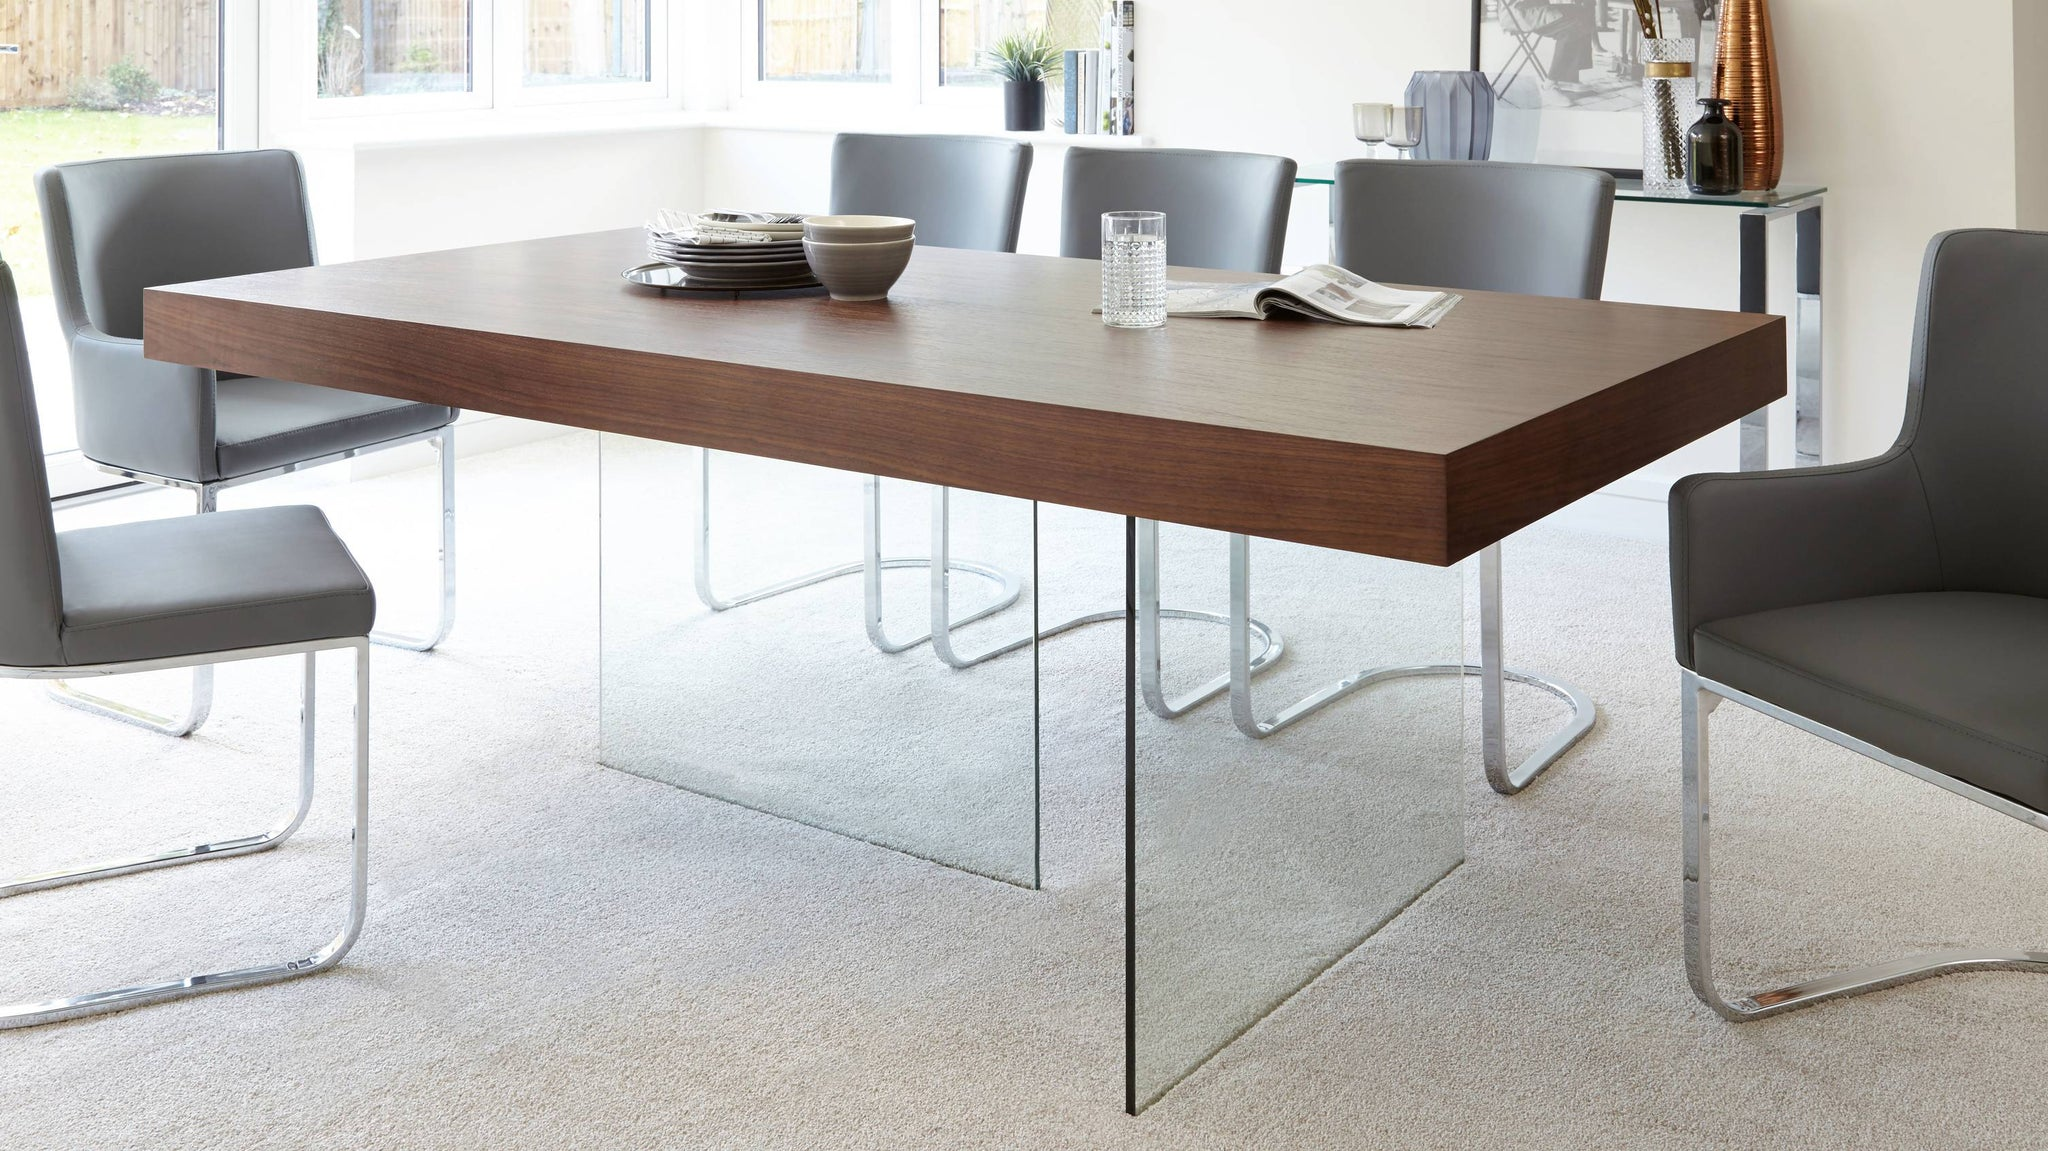 Dark wood and glass 8 seater dining table